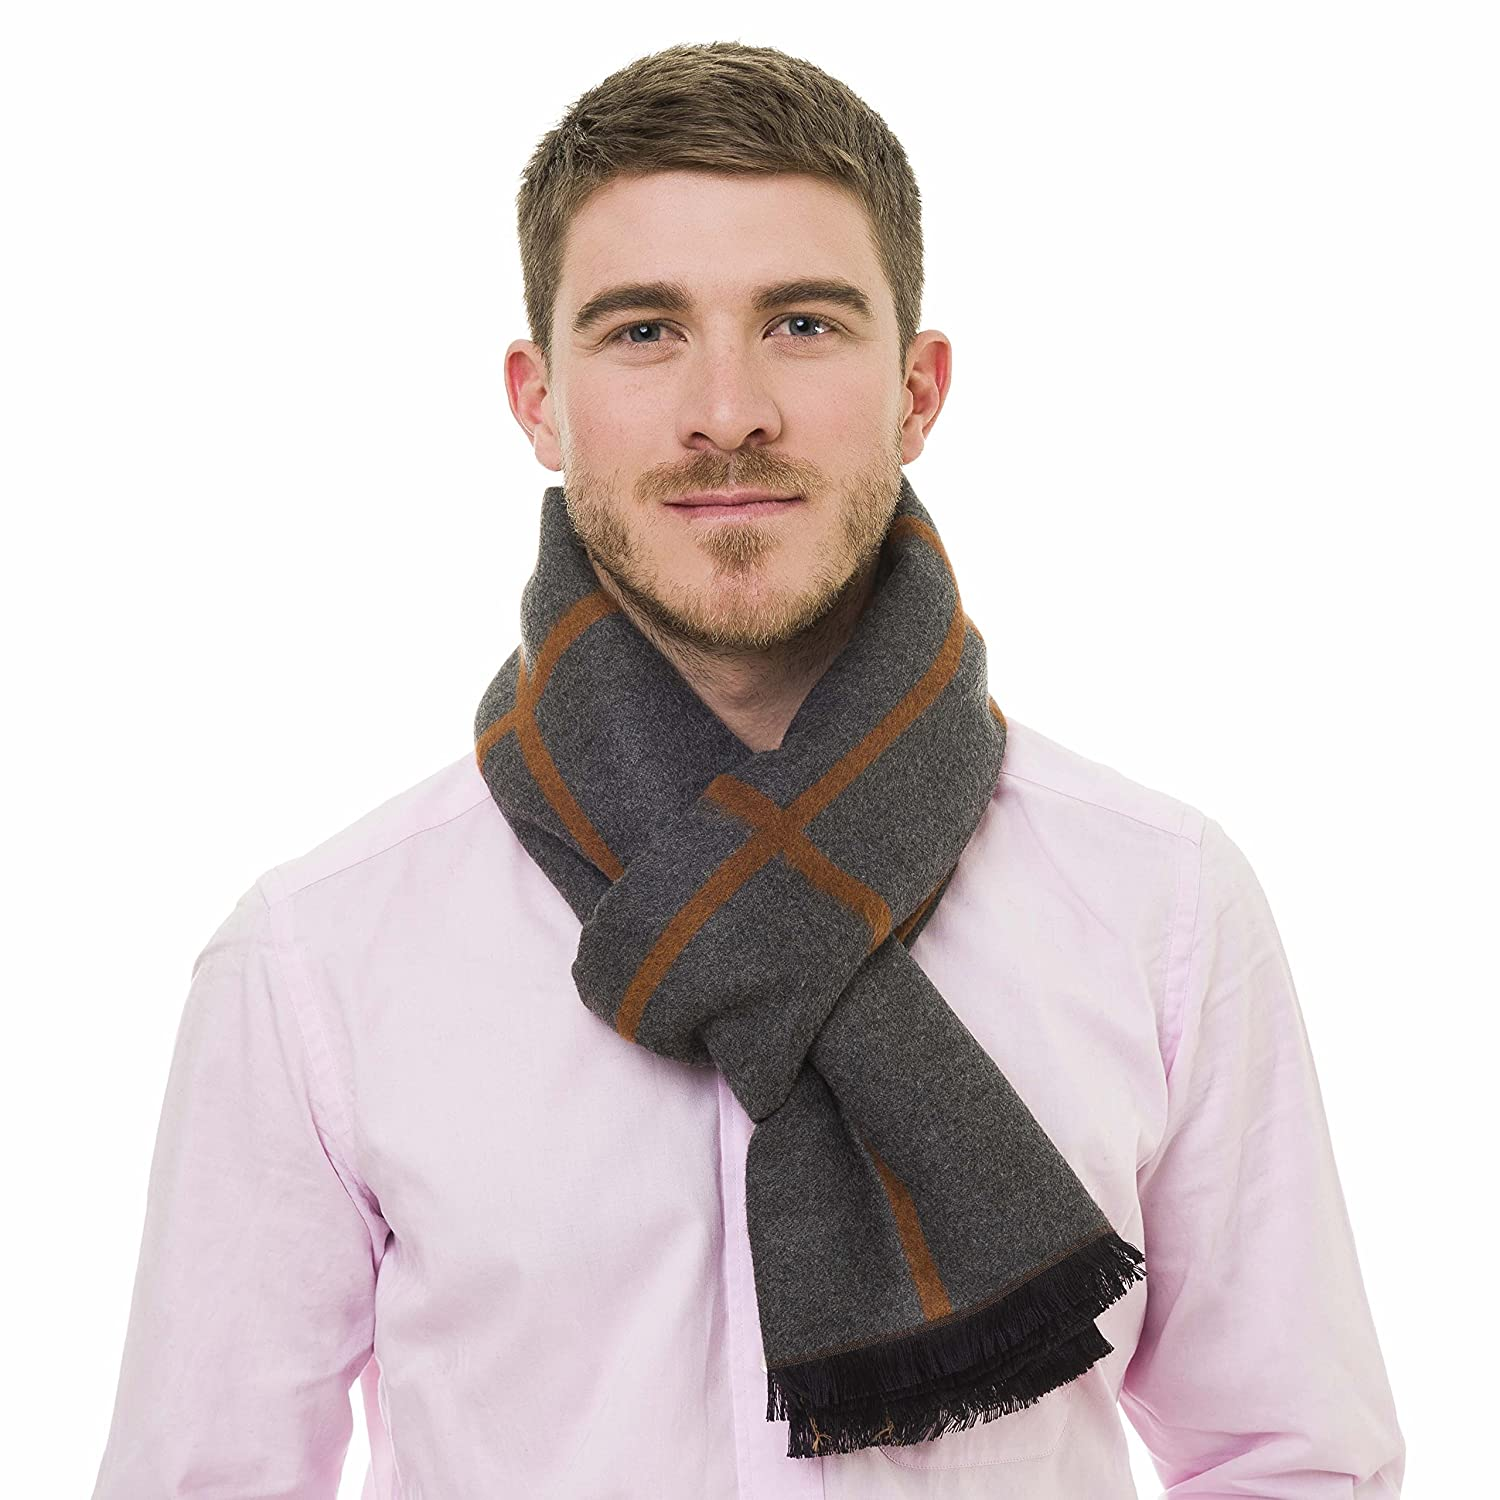 Scarf for Men Spring Winter Cashmere Man Soft Elegant Classic Scarves by Melifluos TA